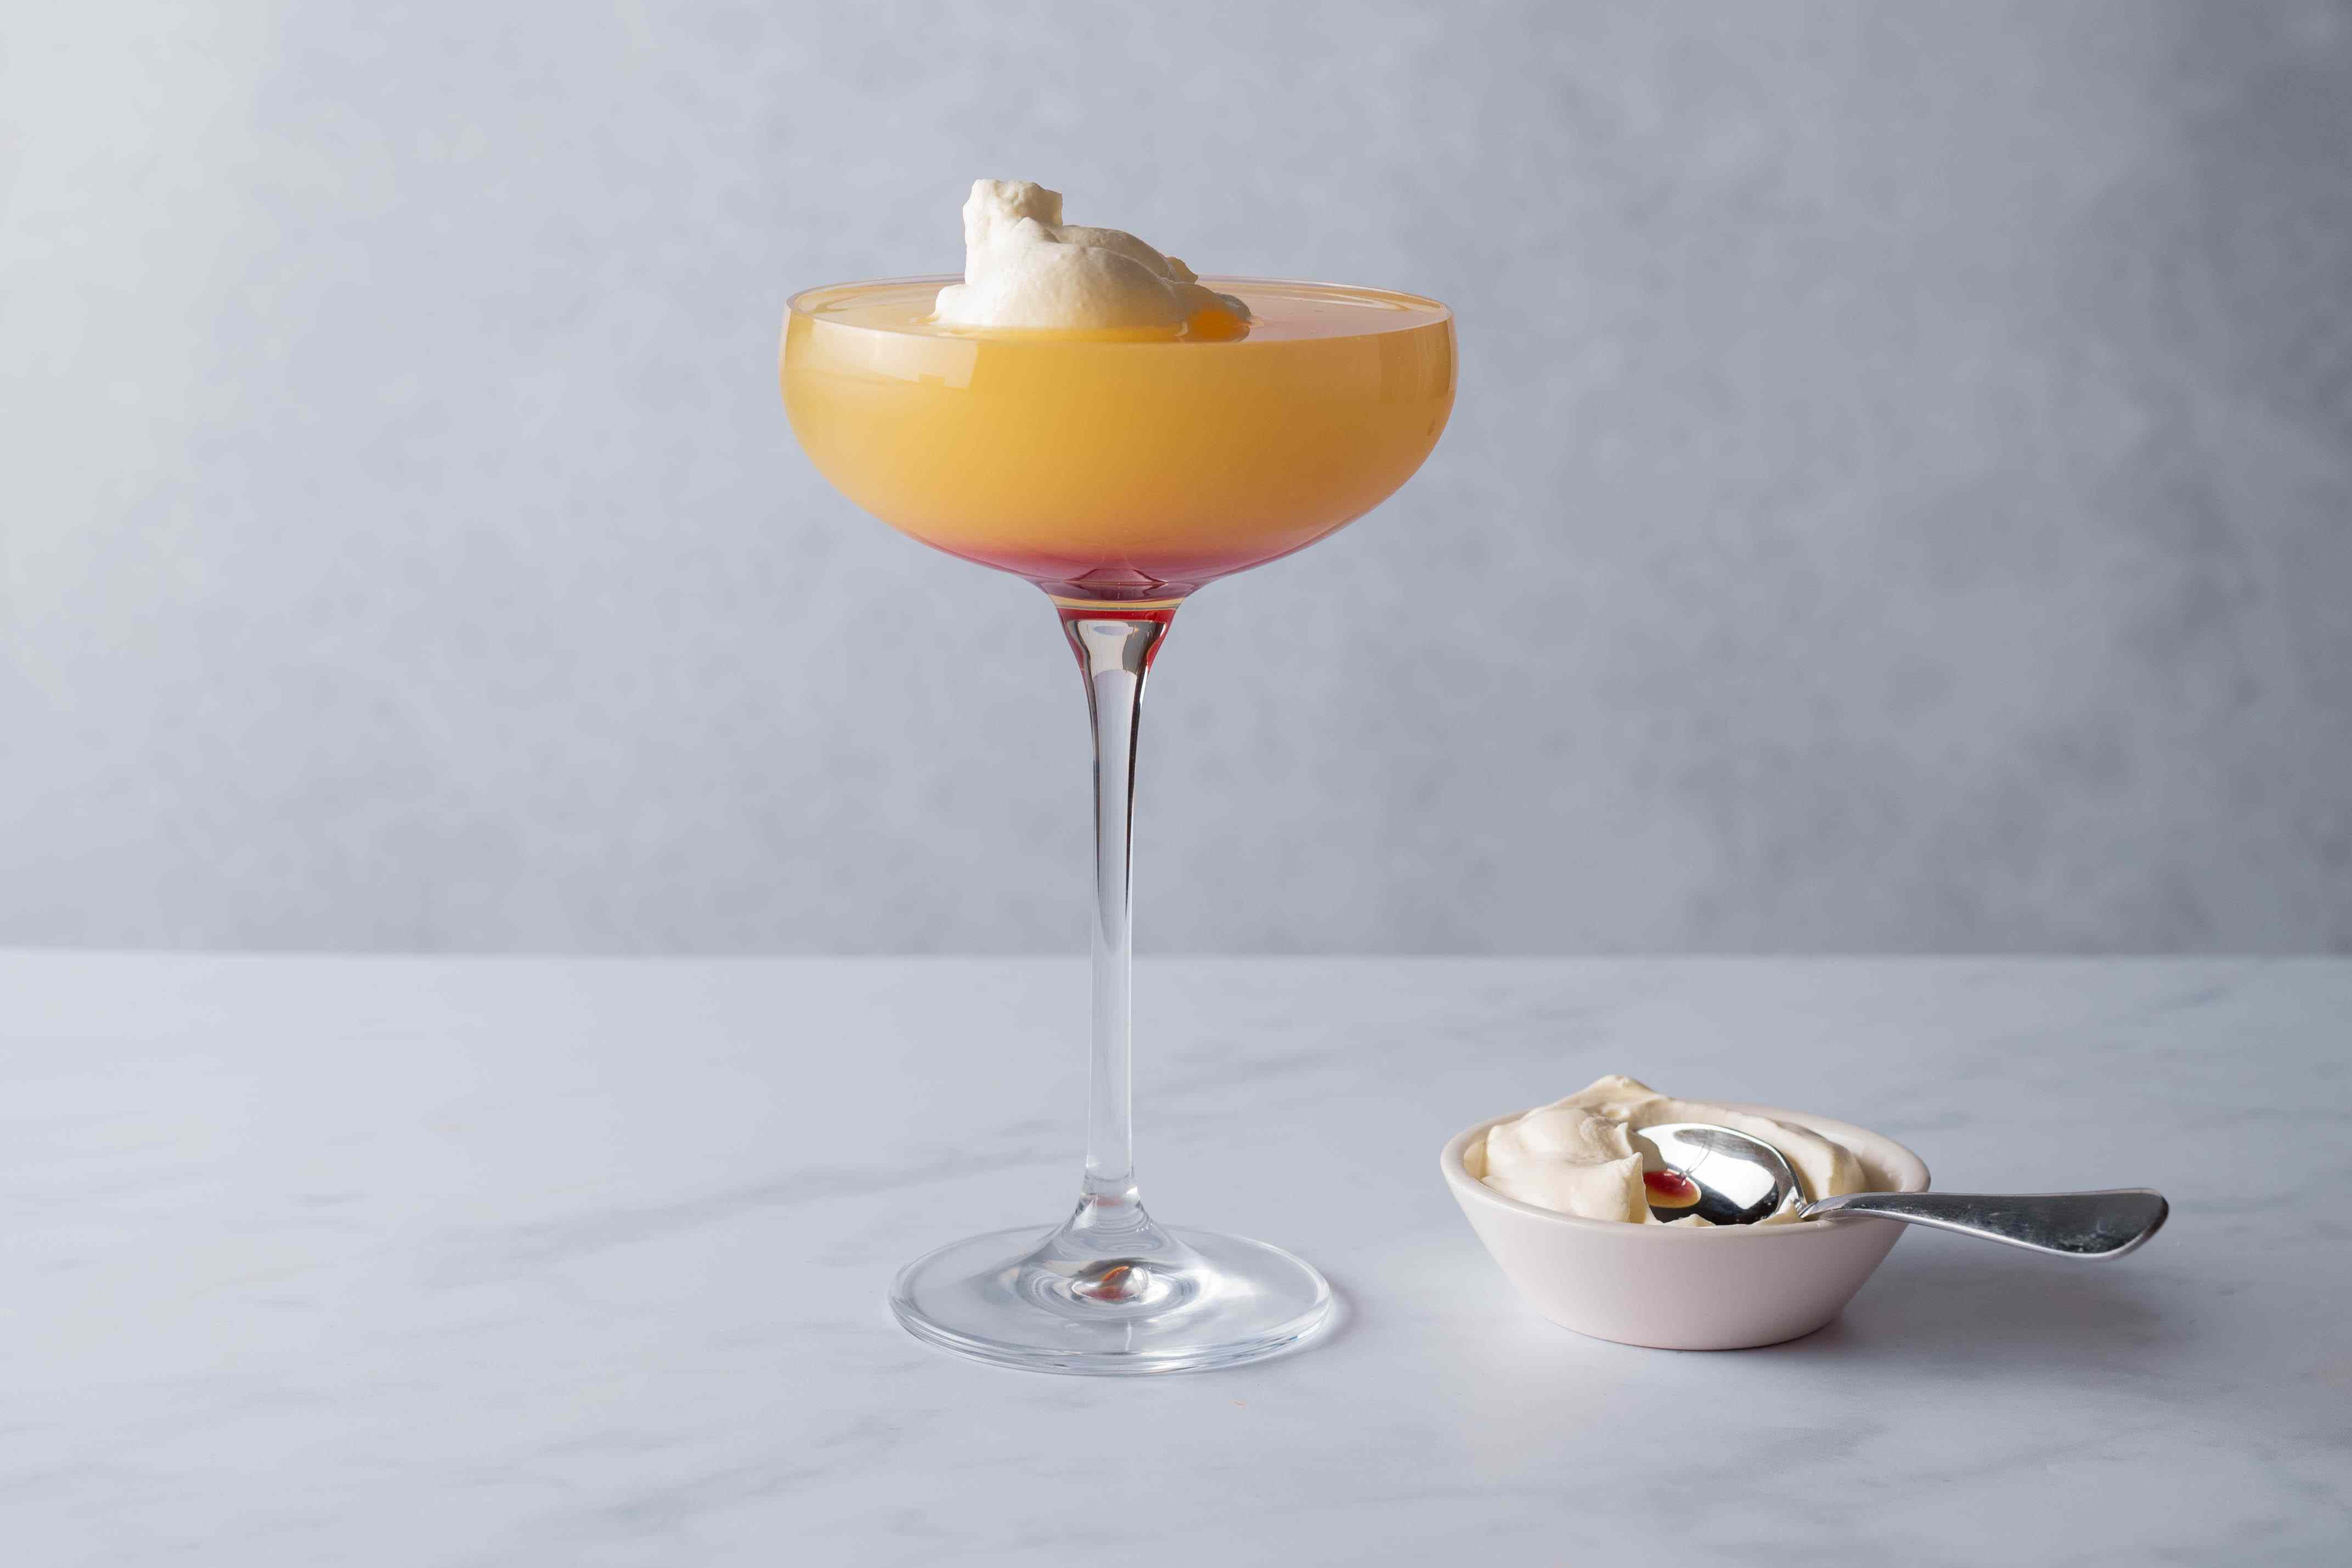 Whipped Sunset Cocktail, Garnished with whipped cream